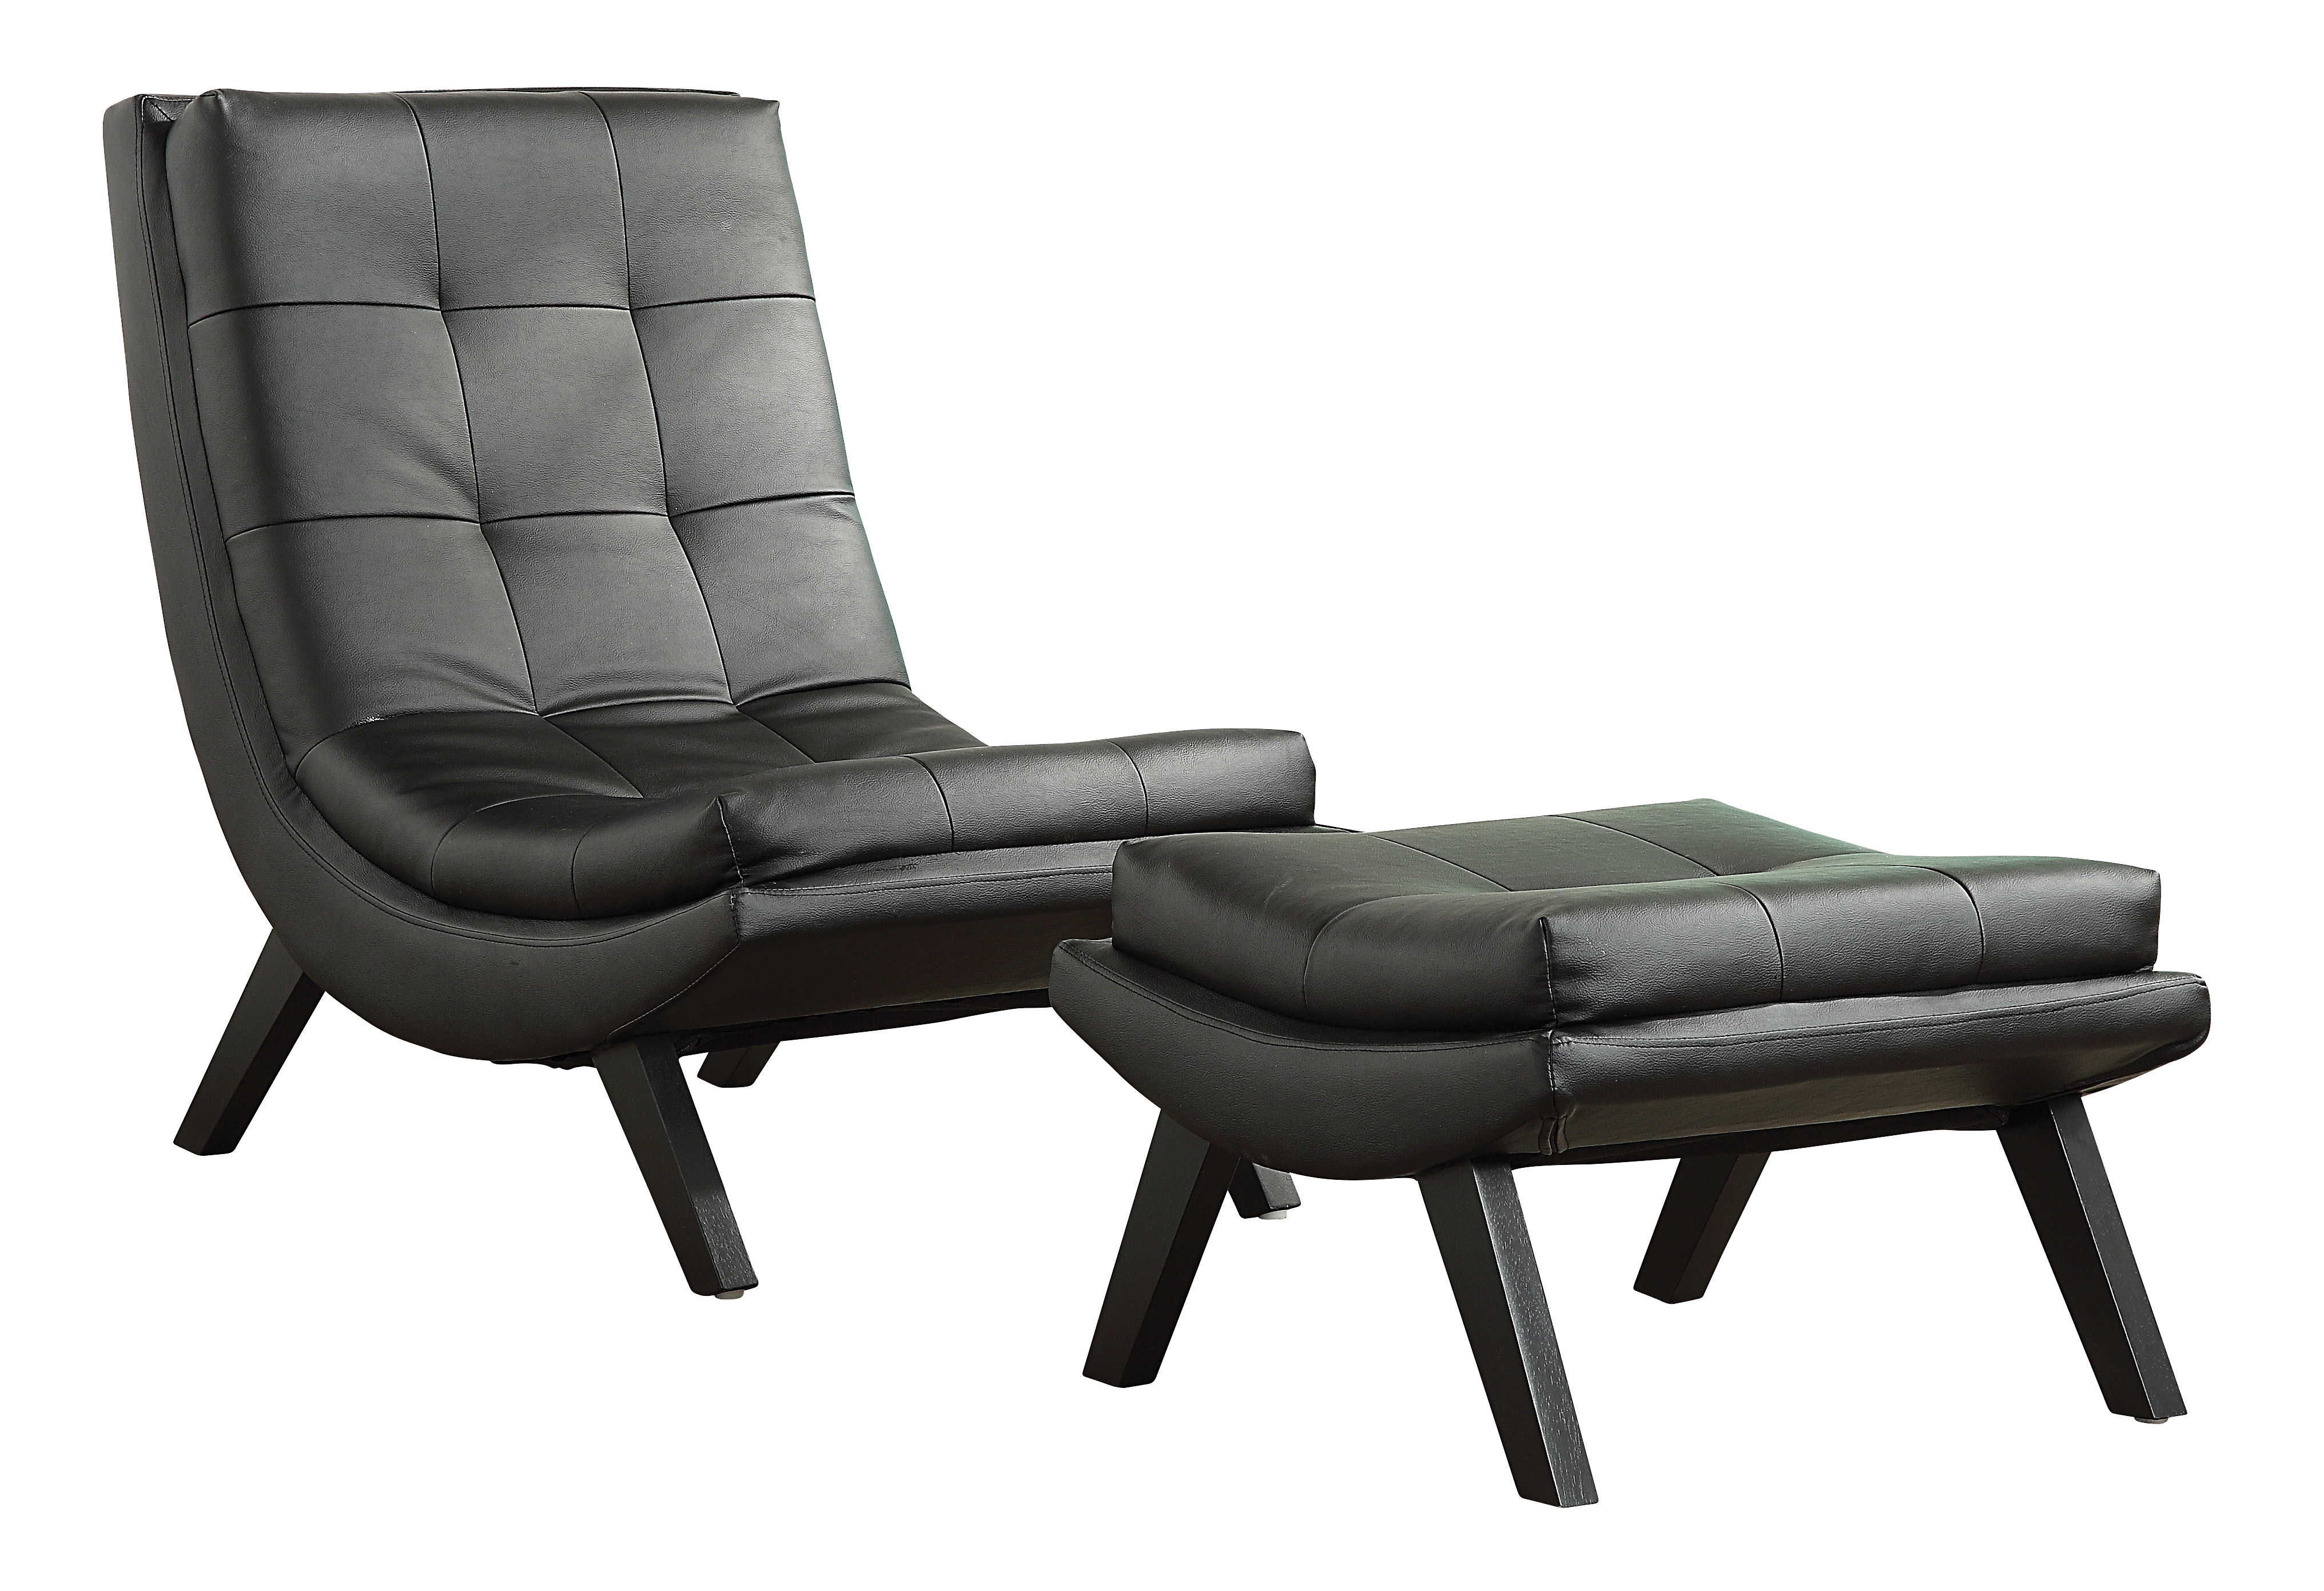 Tustin lounge chair and ottoman set by ave six office star for Avenue six curves tufted chaise lounge